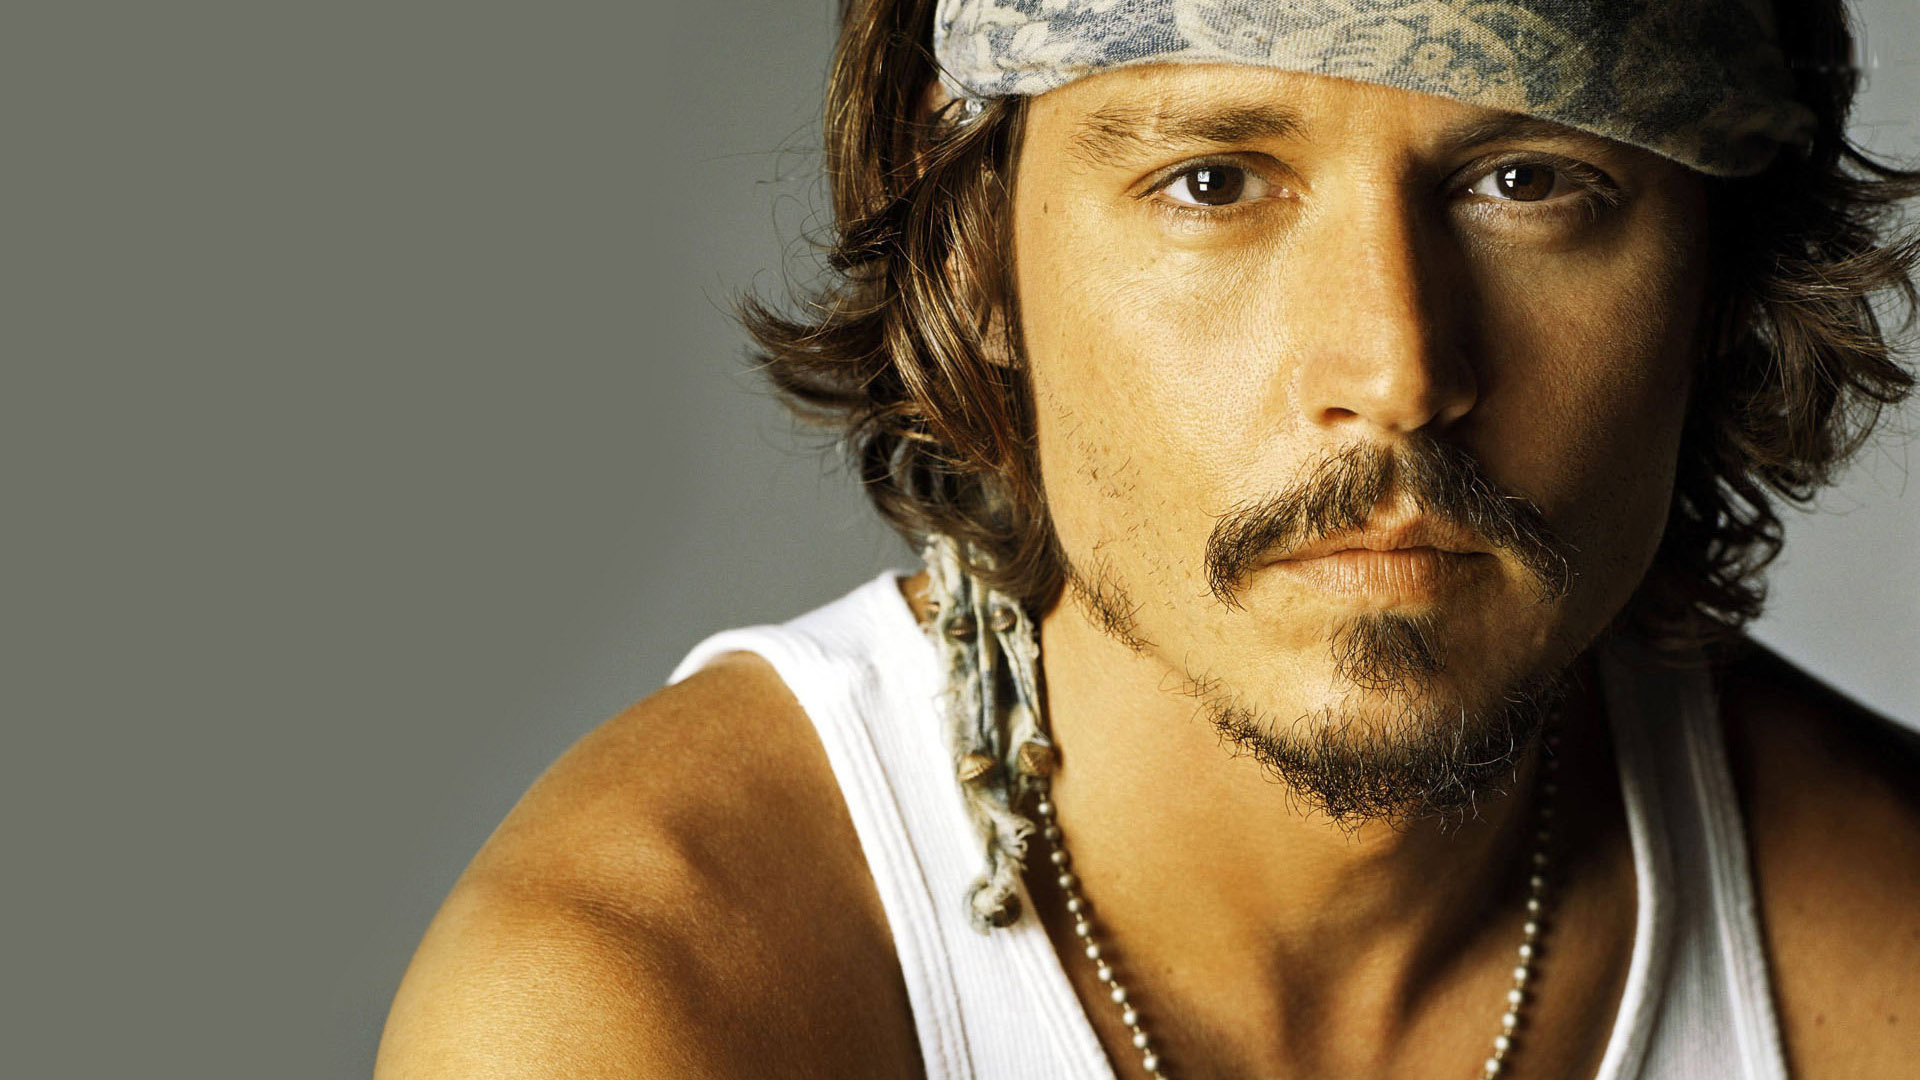 Photogenic Hd Johnny Depp Wallpaper Hd Wallpapers